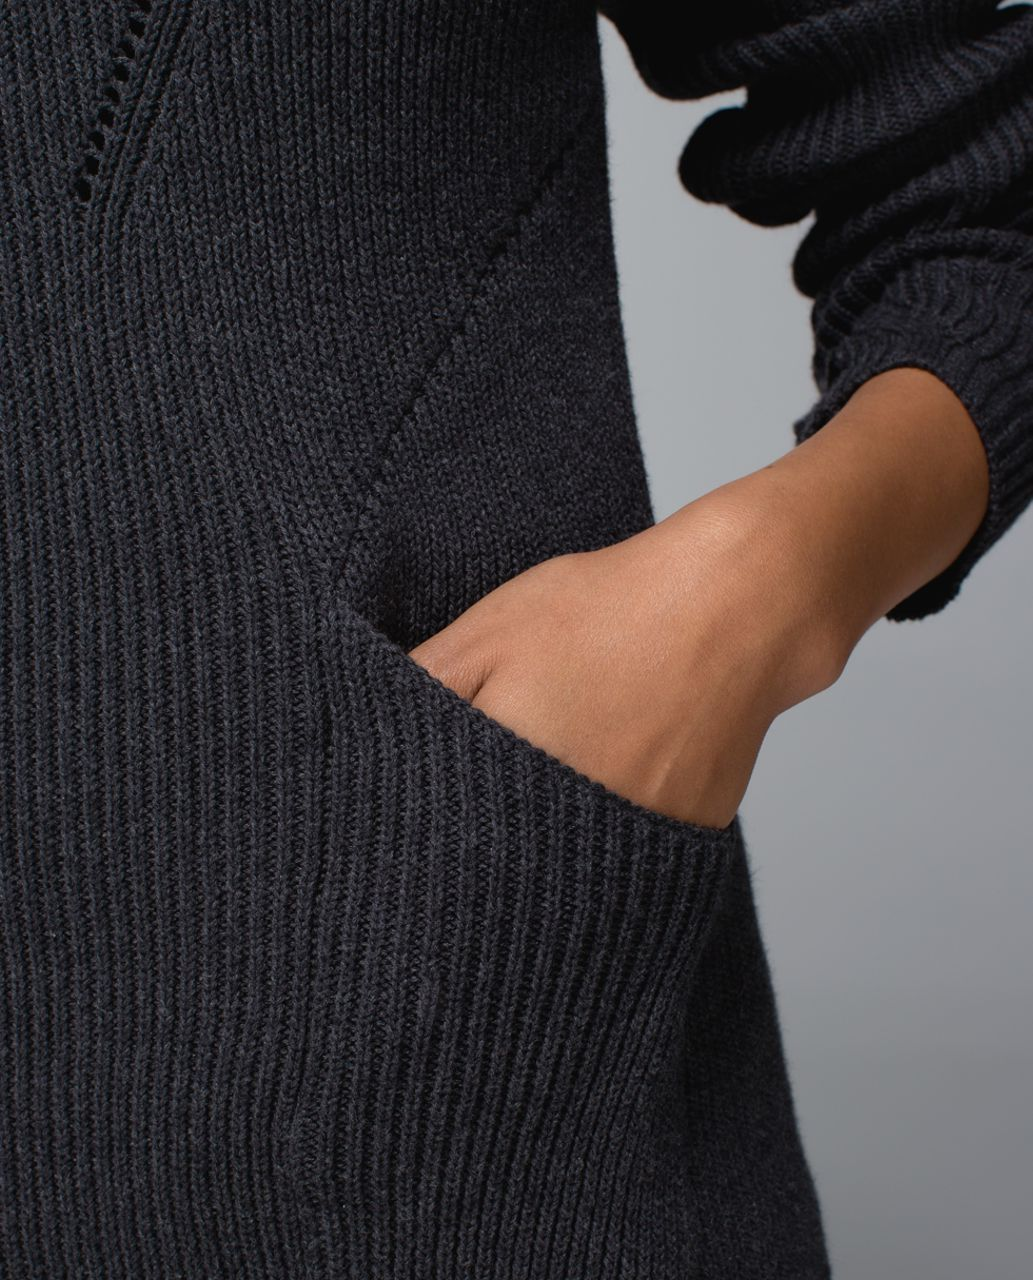 Lululemon The Sweater The Better - Heathered Black